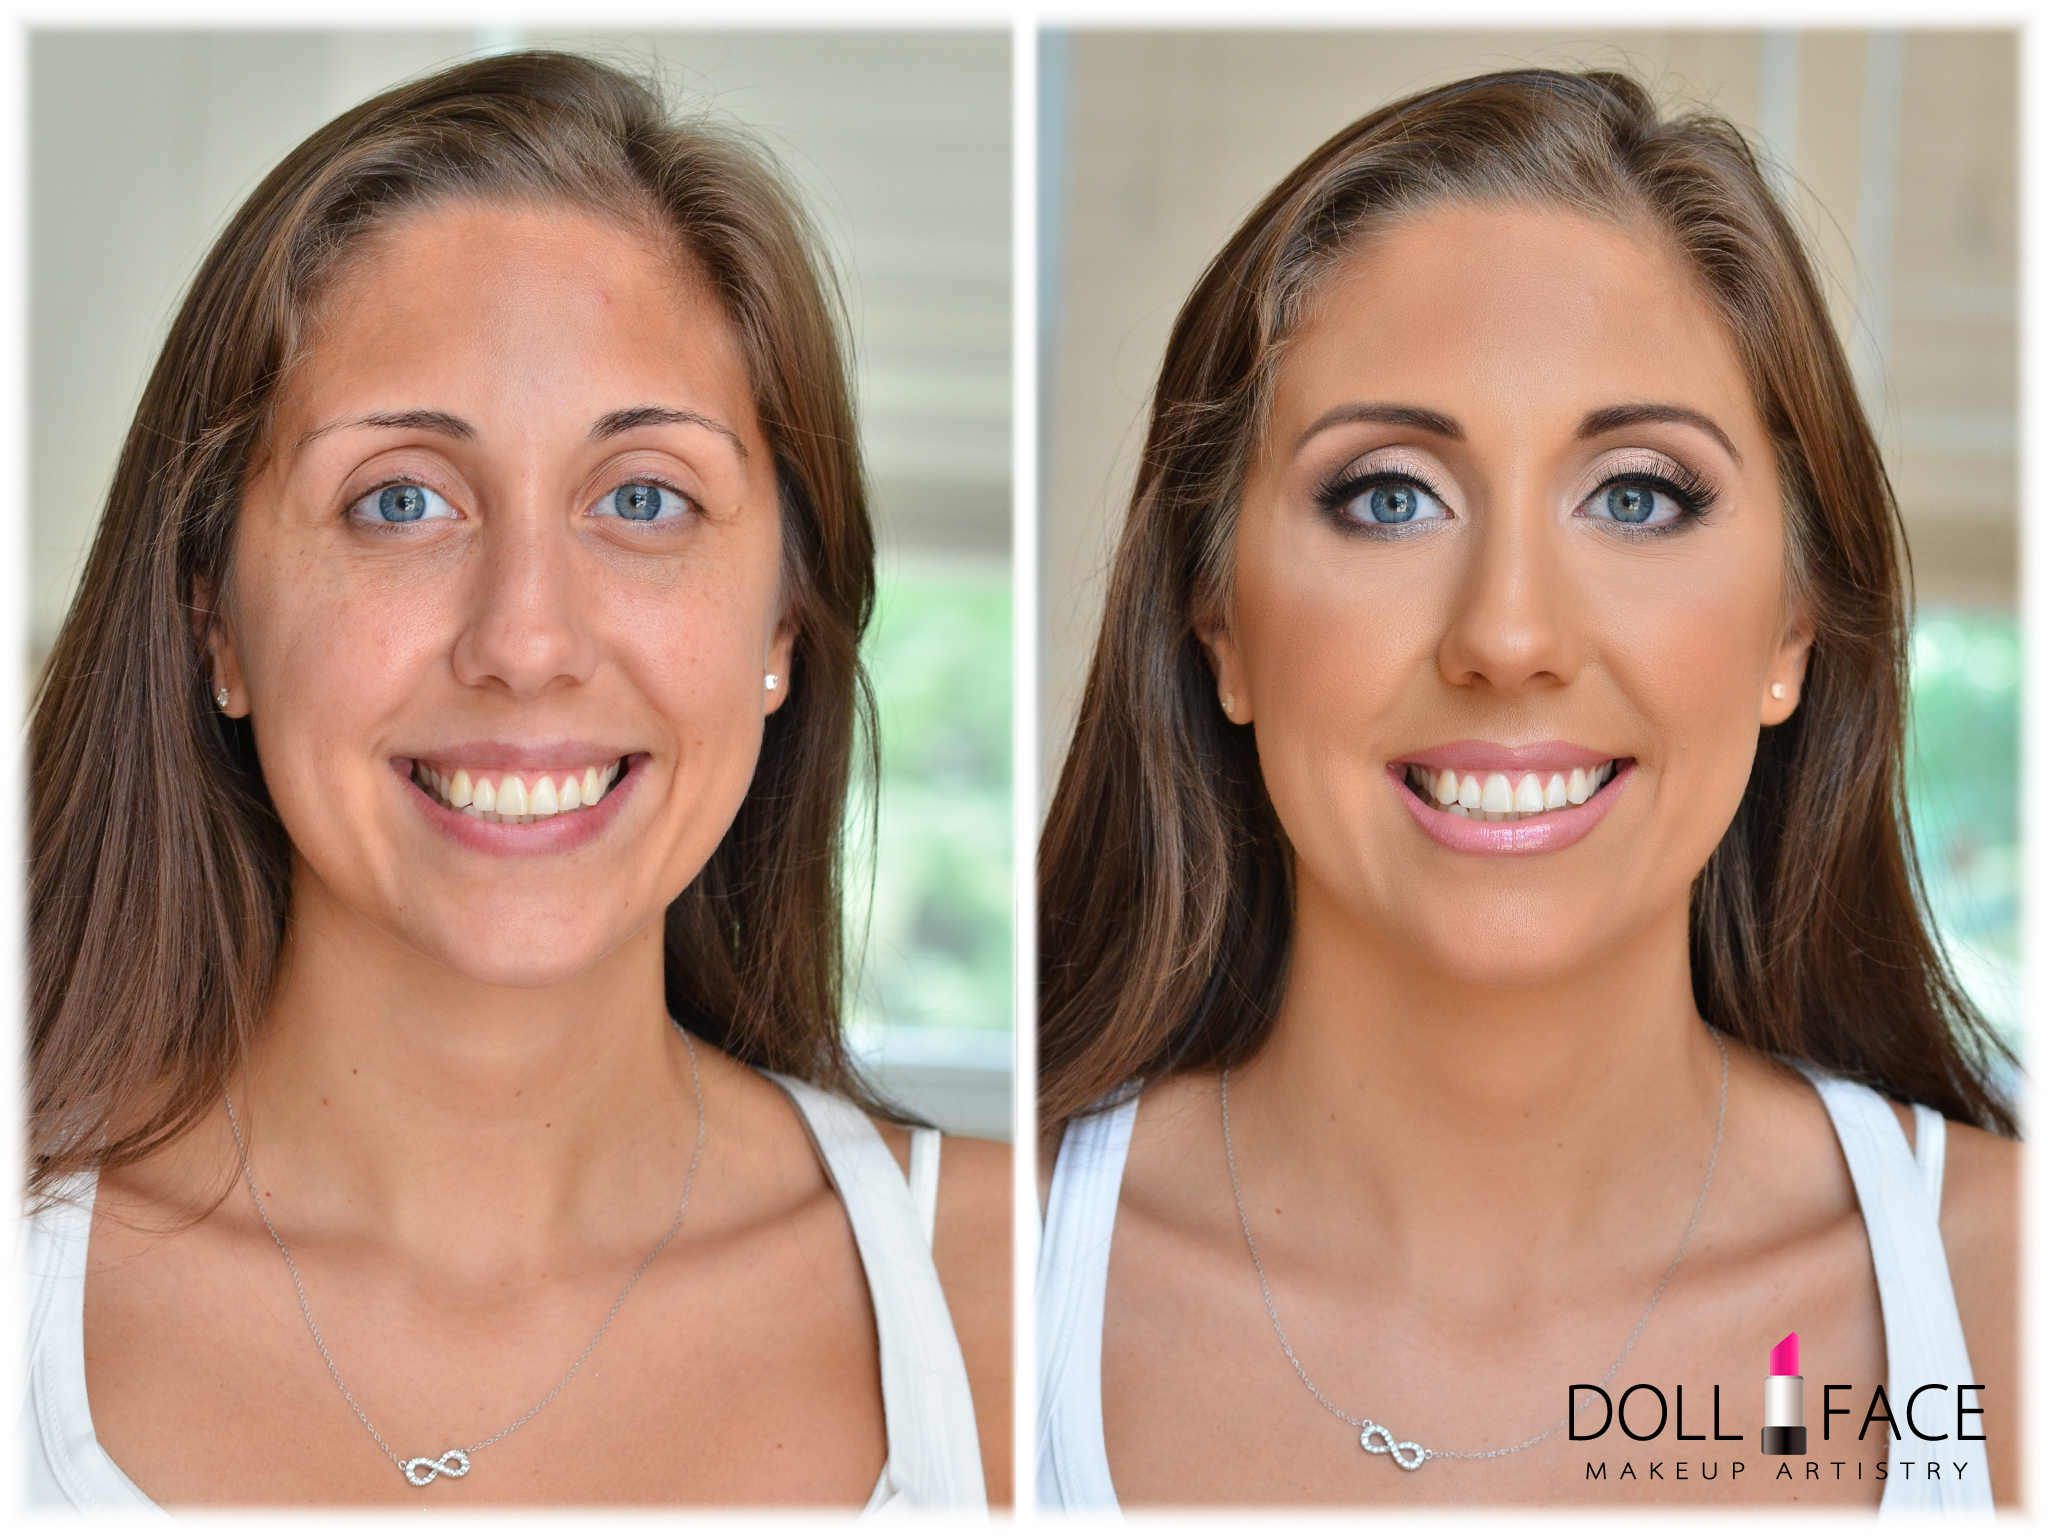 Makeup Artist Before and After photo